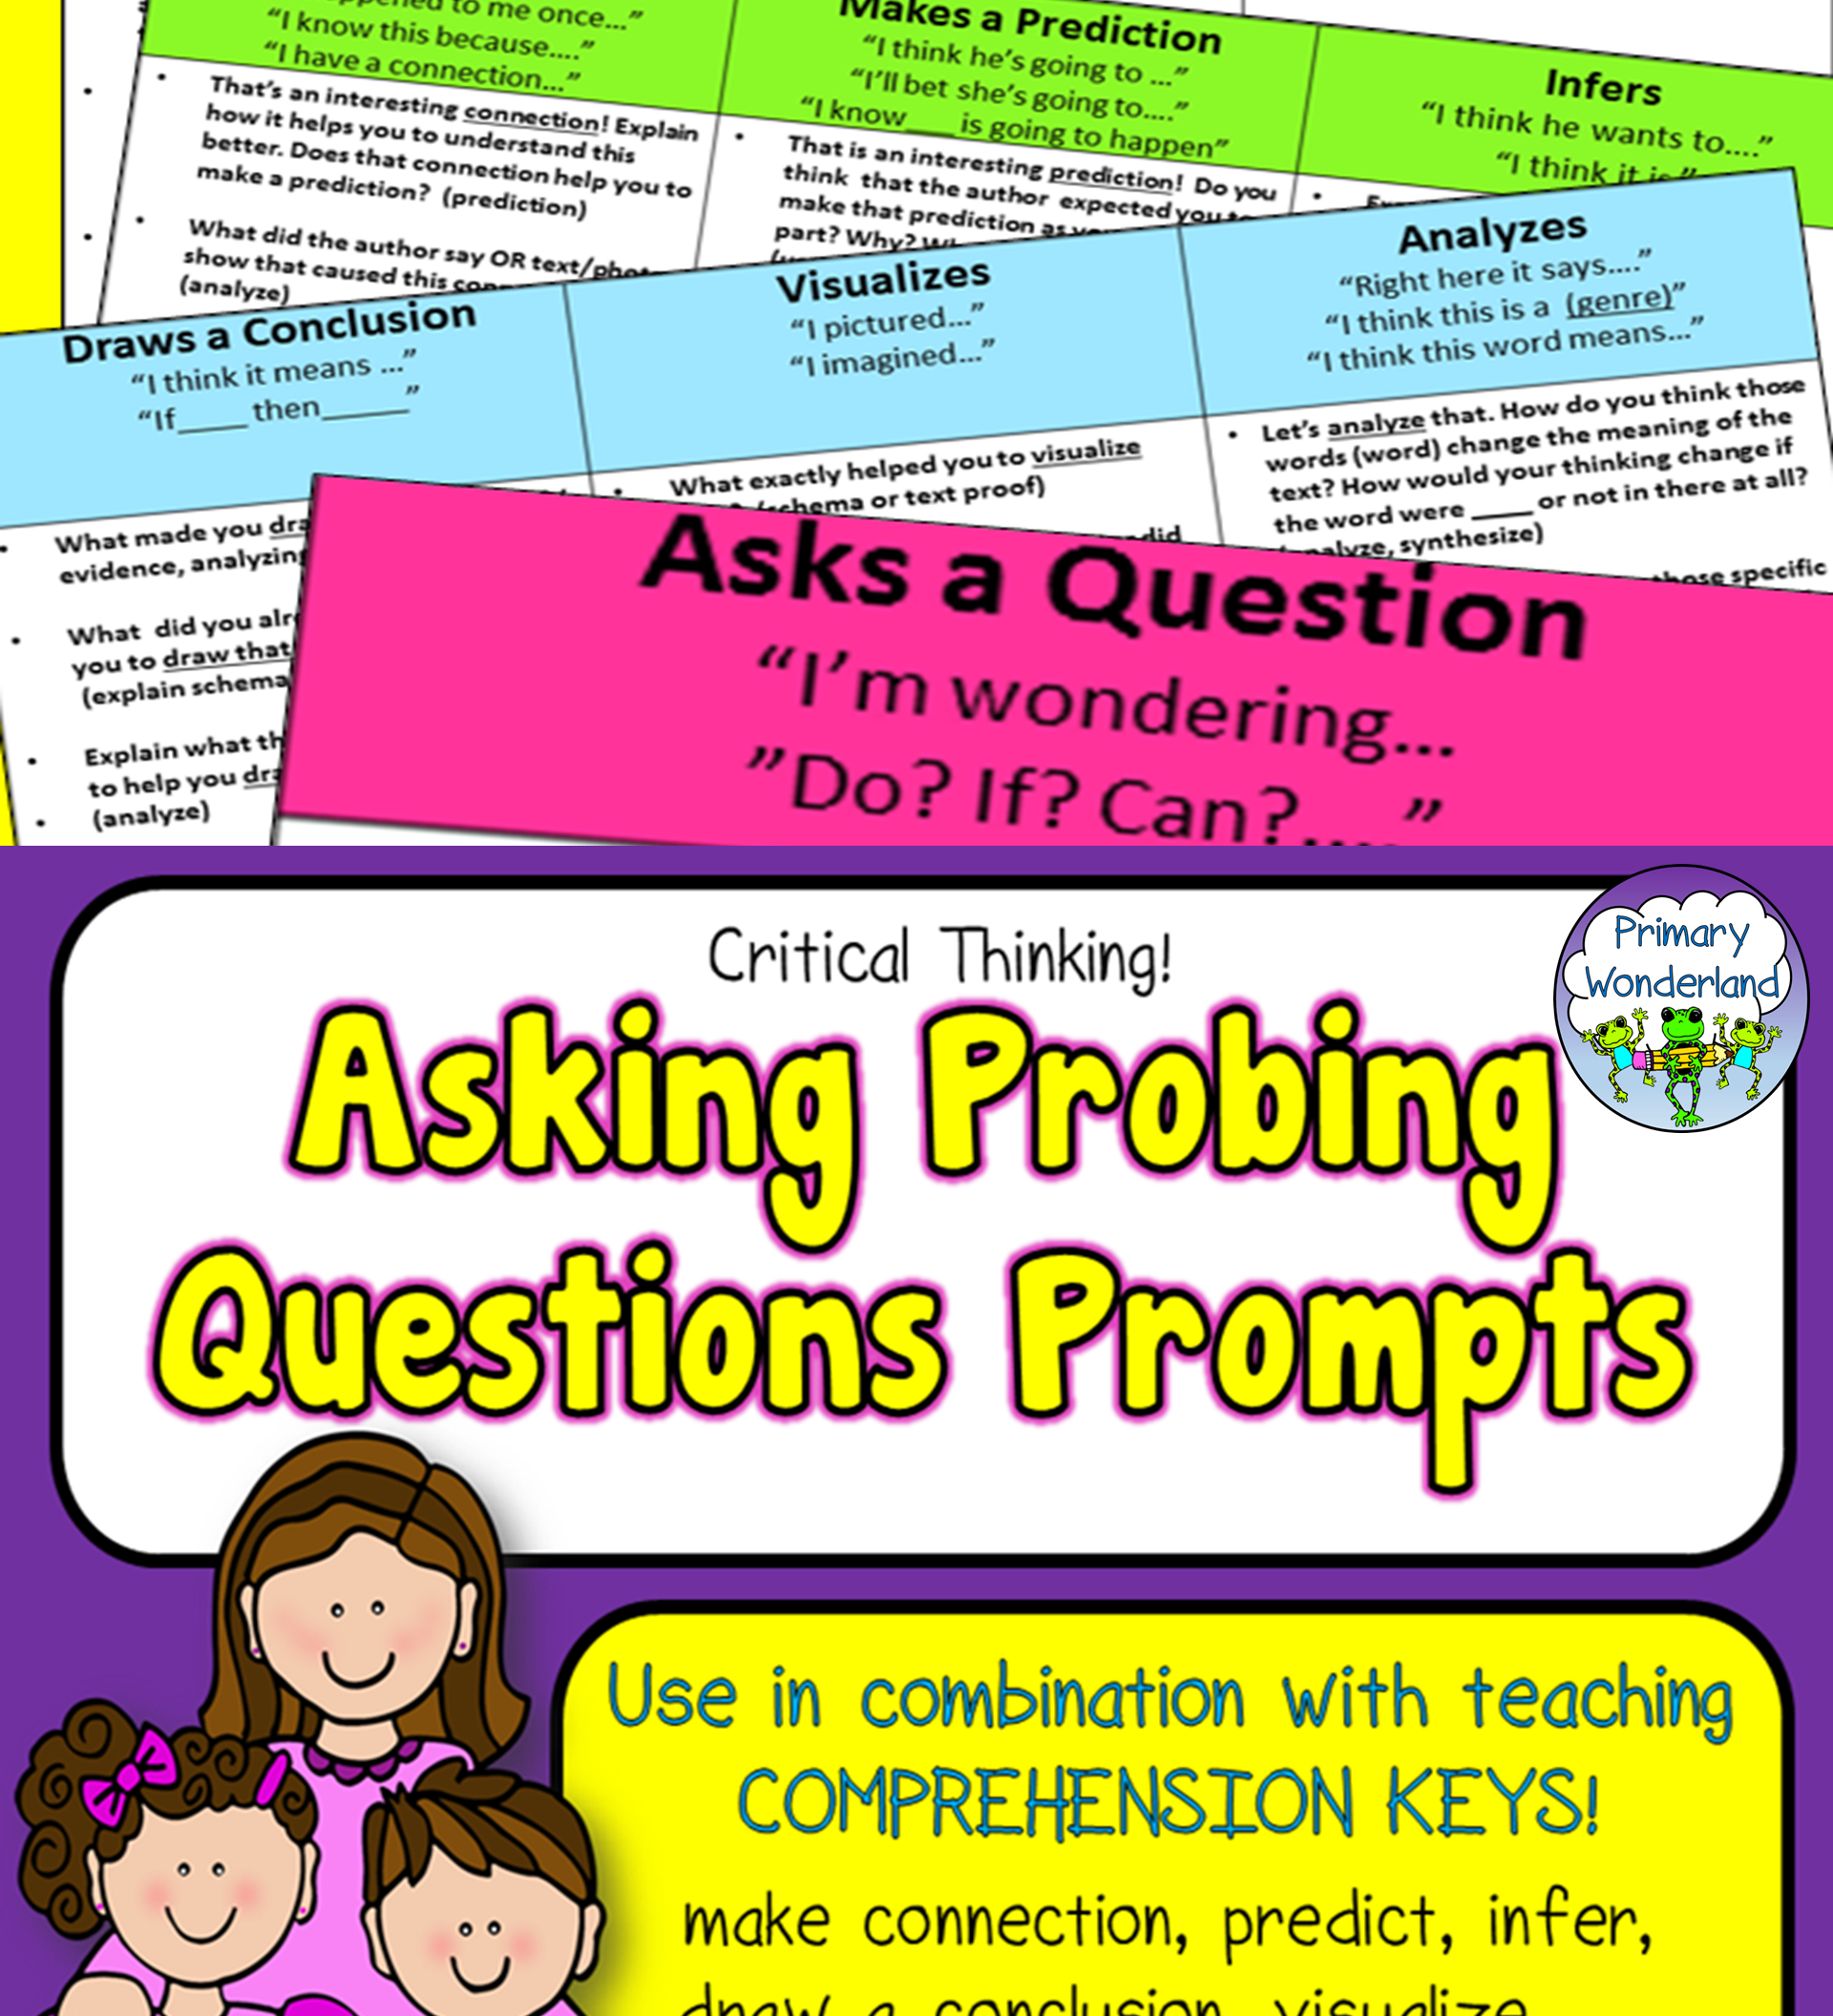 Asking Probing Questions Prompts